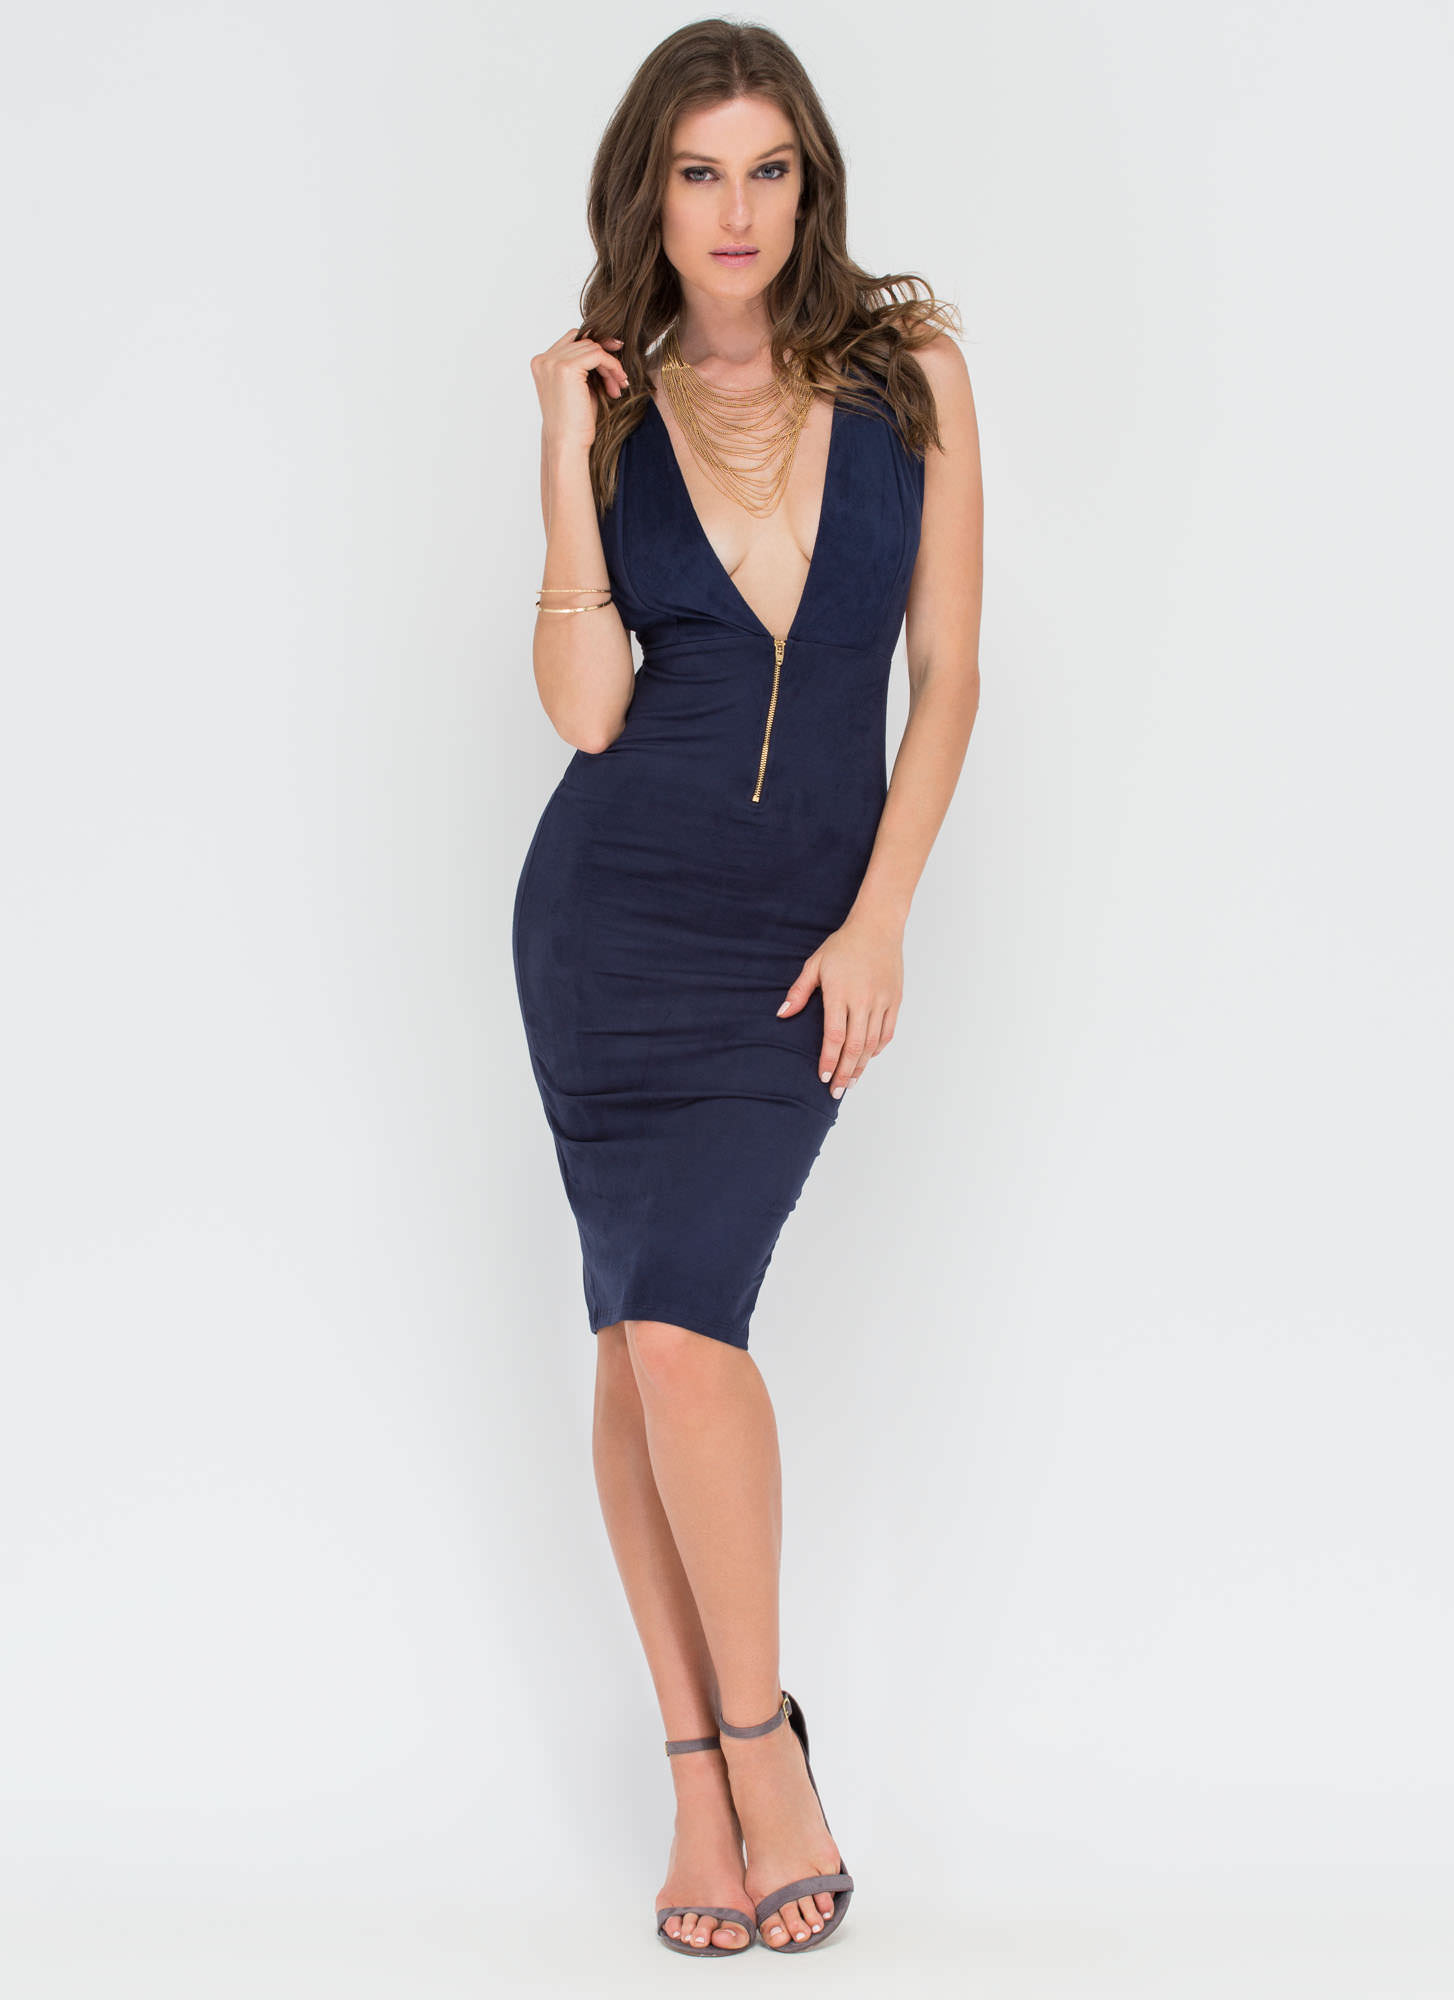 Take Notice Plunging Faux Suede Dress NAVY